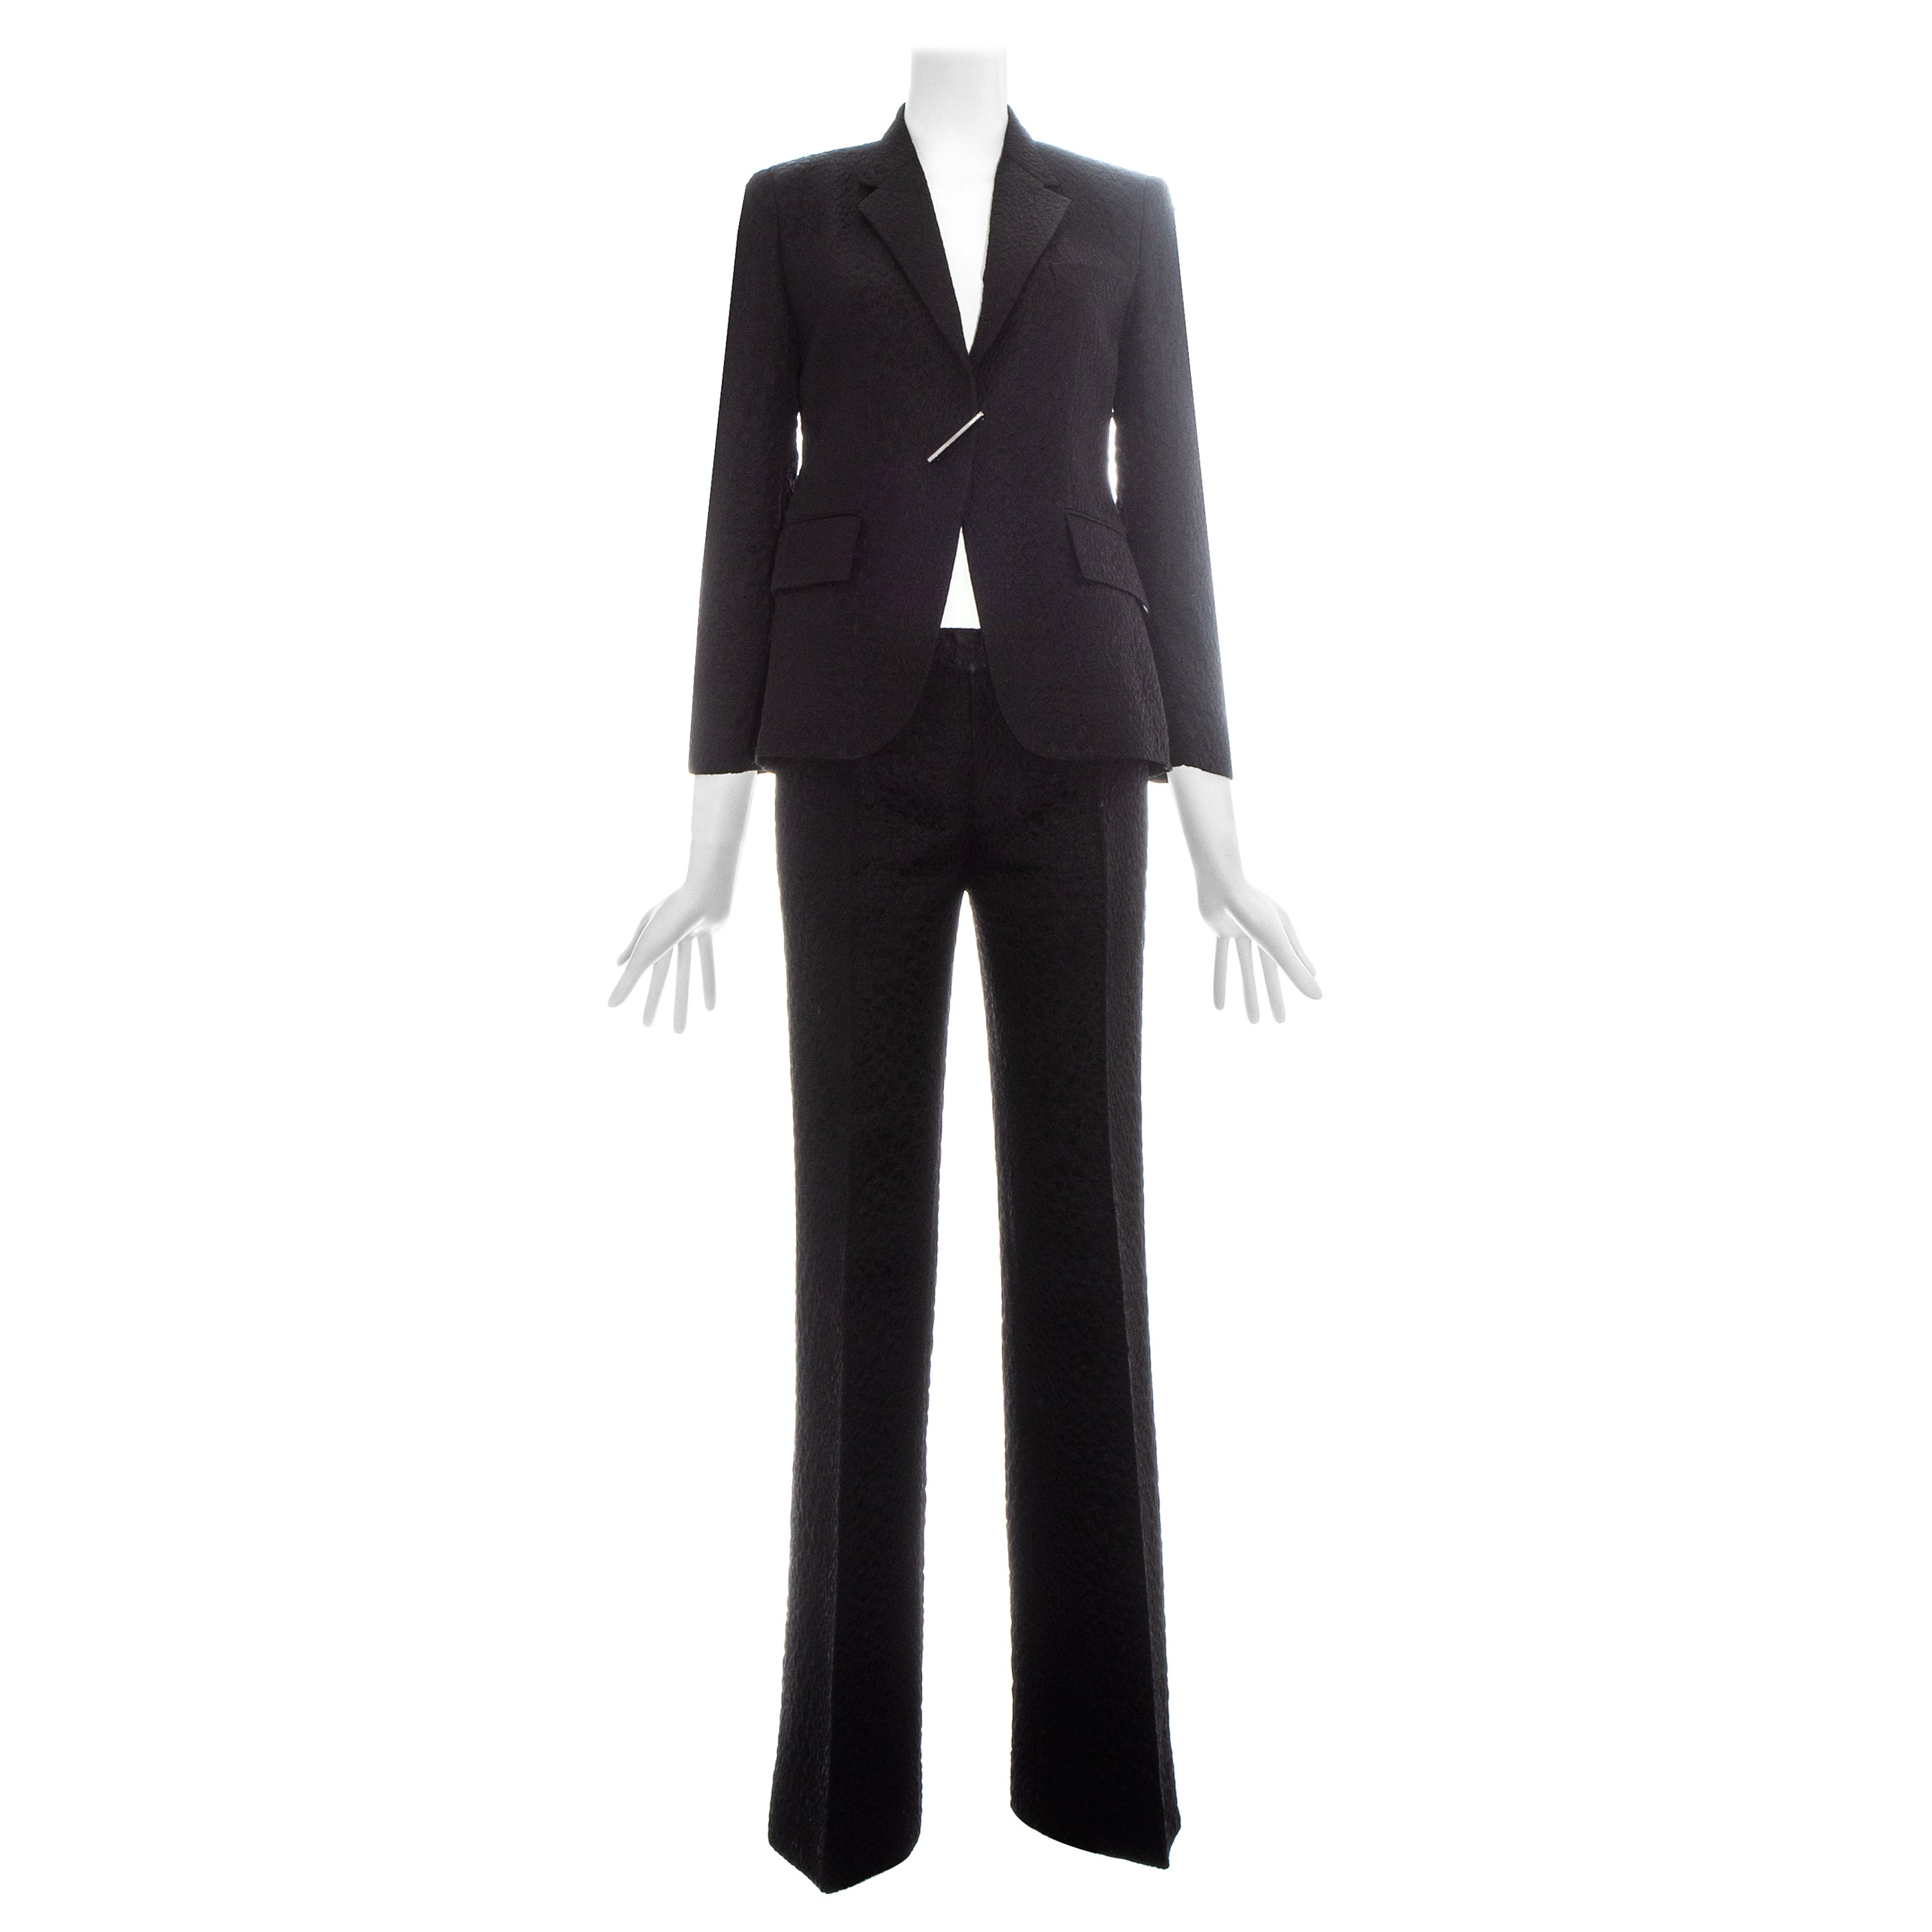 Gucci by Tom Ford black croc embossed evening pant suit, ss 2000